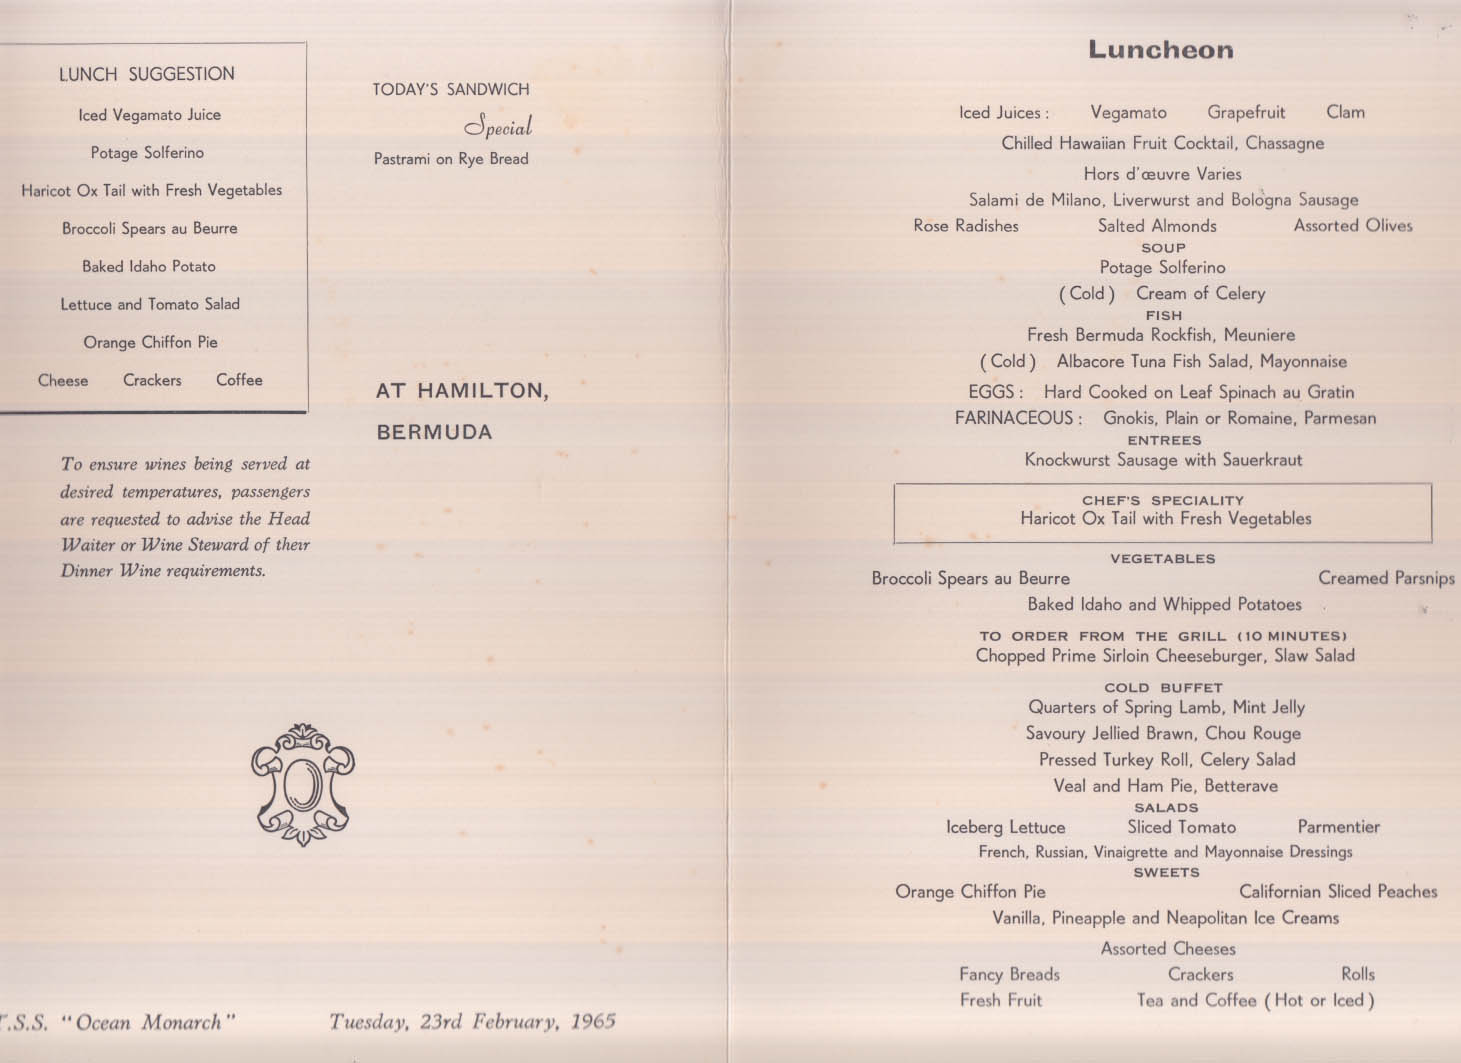 Furness Bermuda Line TSS Ocean Monarch Luncheon Menu 2/23 1965